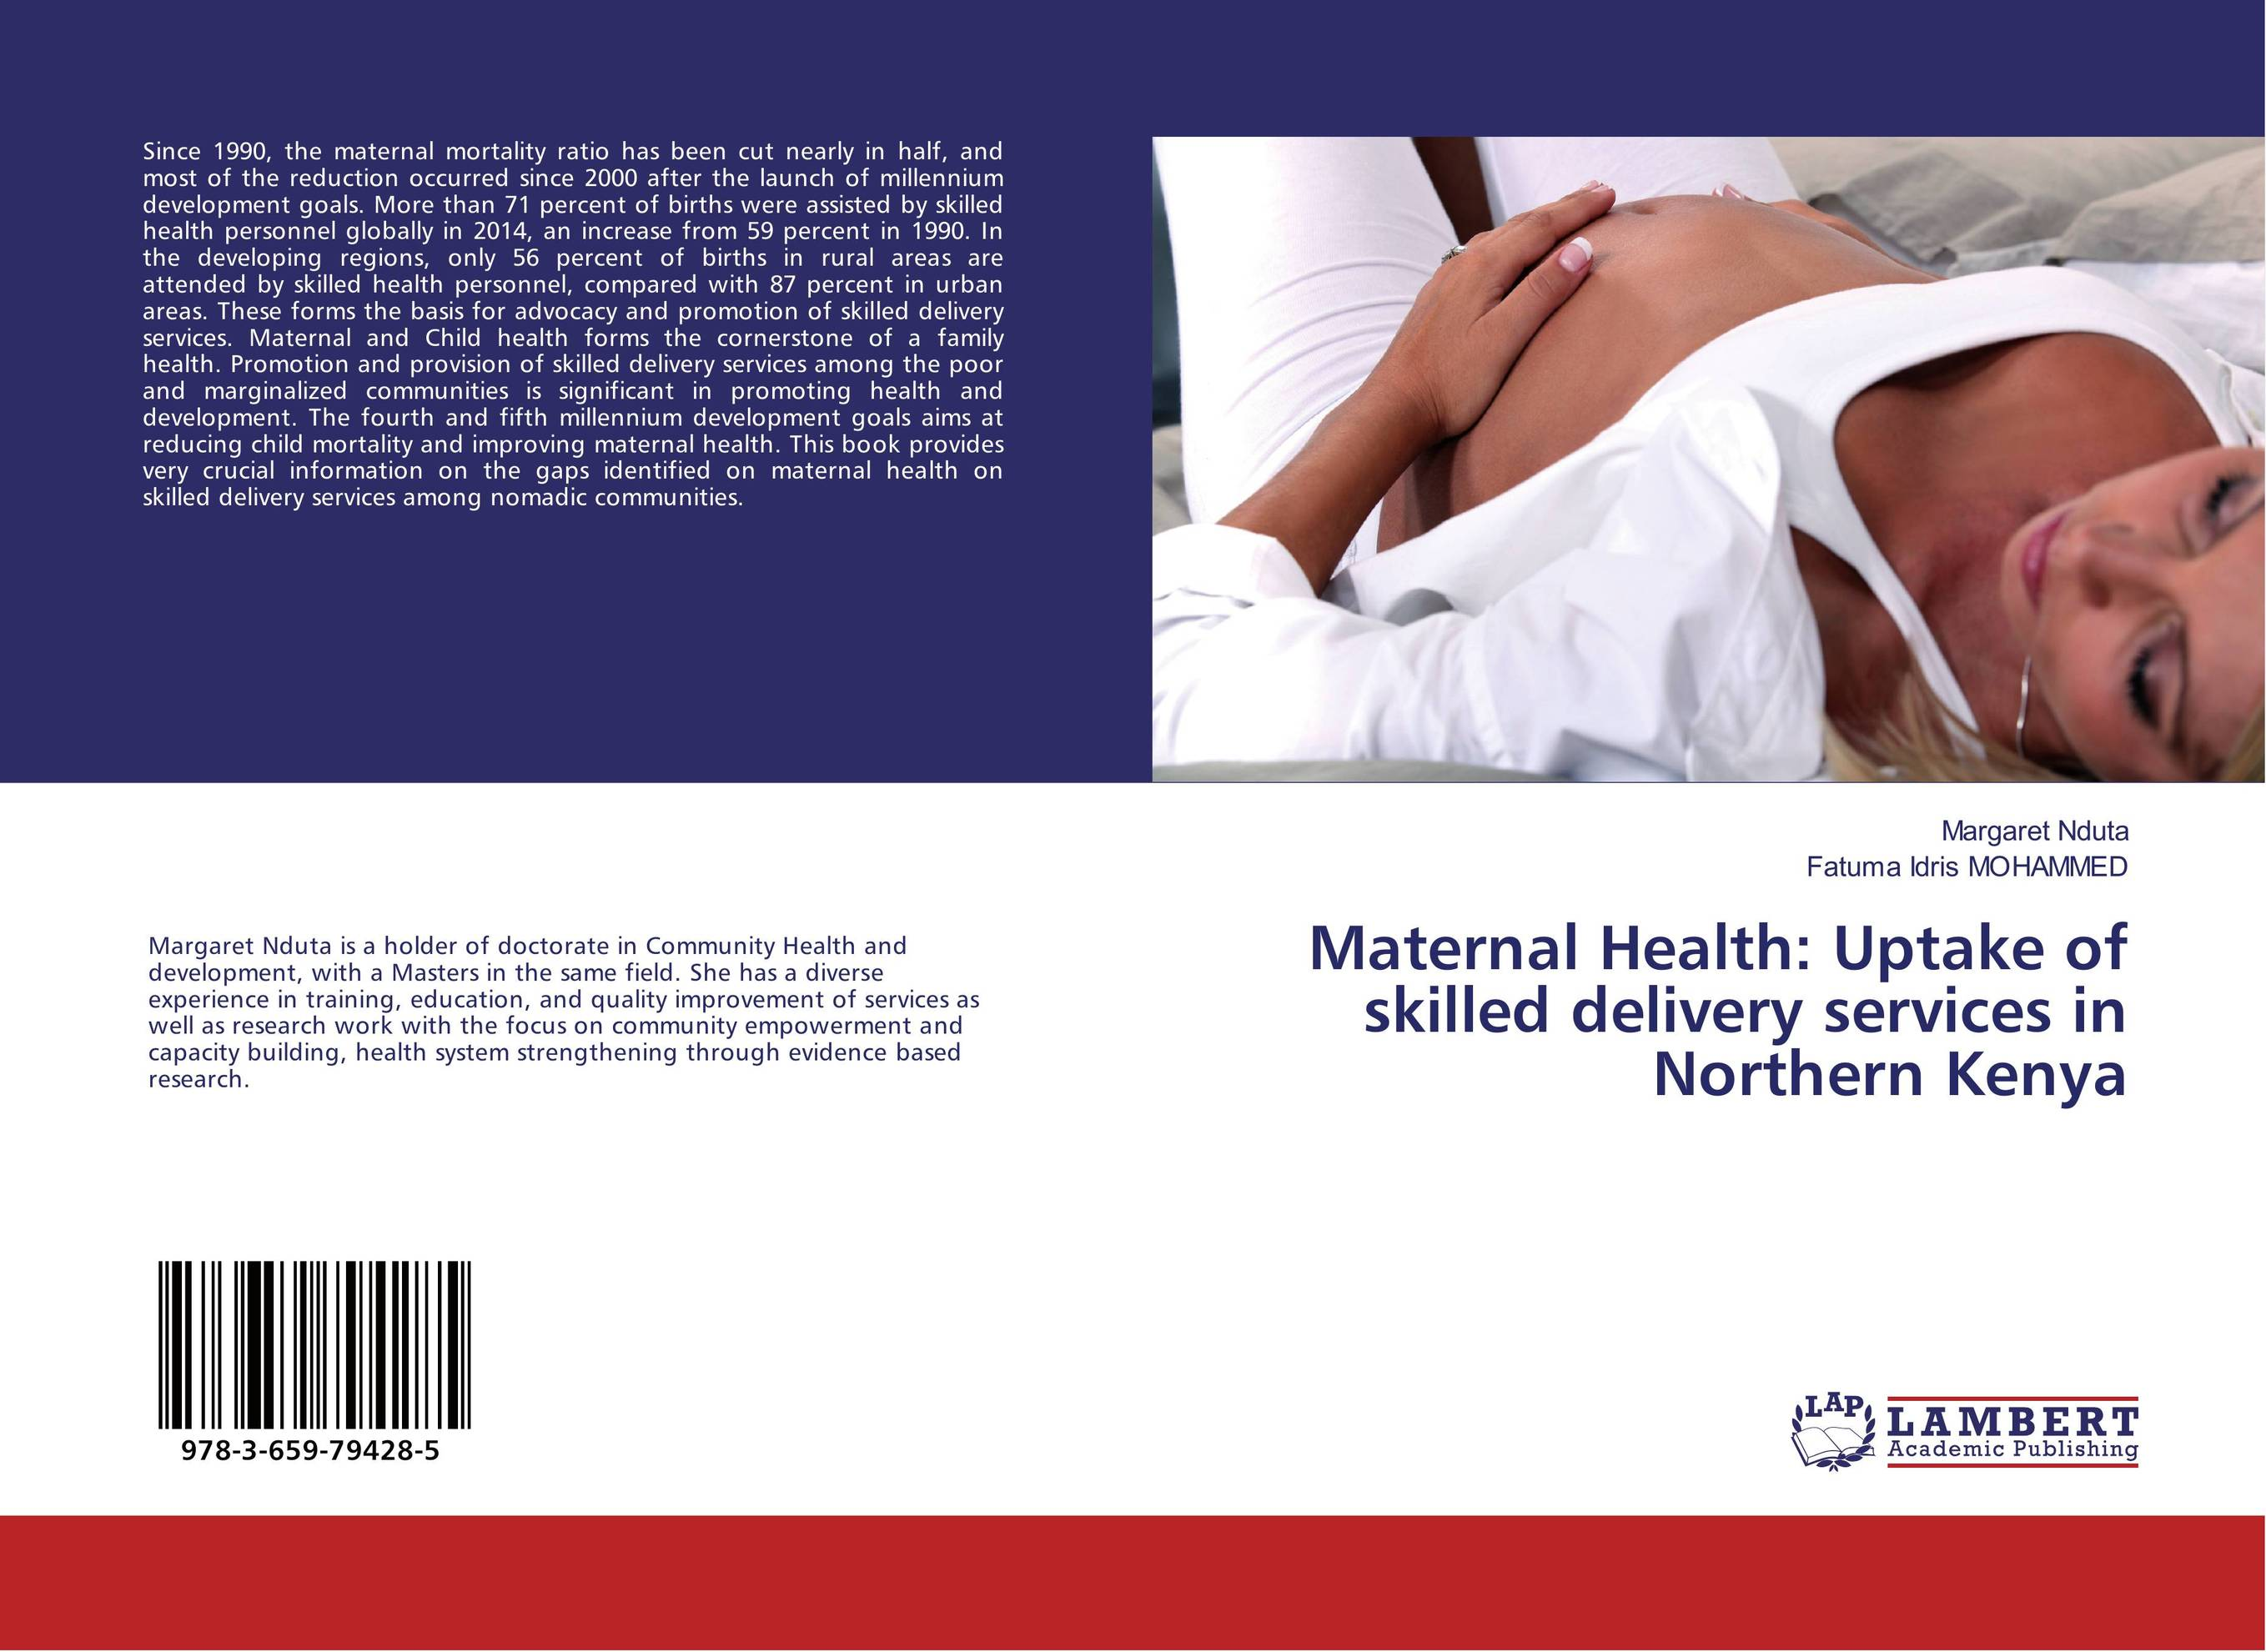 Maternal Health: Uptake of skilled delivery services in Northern Kenya maureen a adoyo health service delivery in kenya